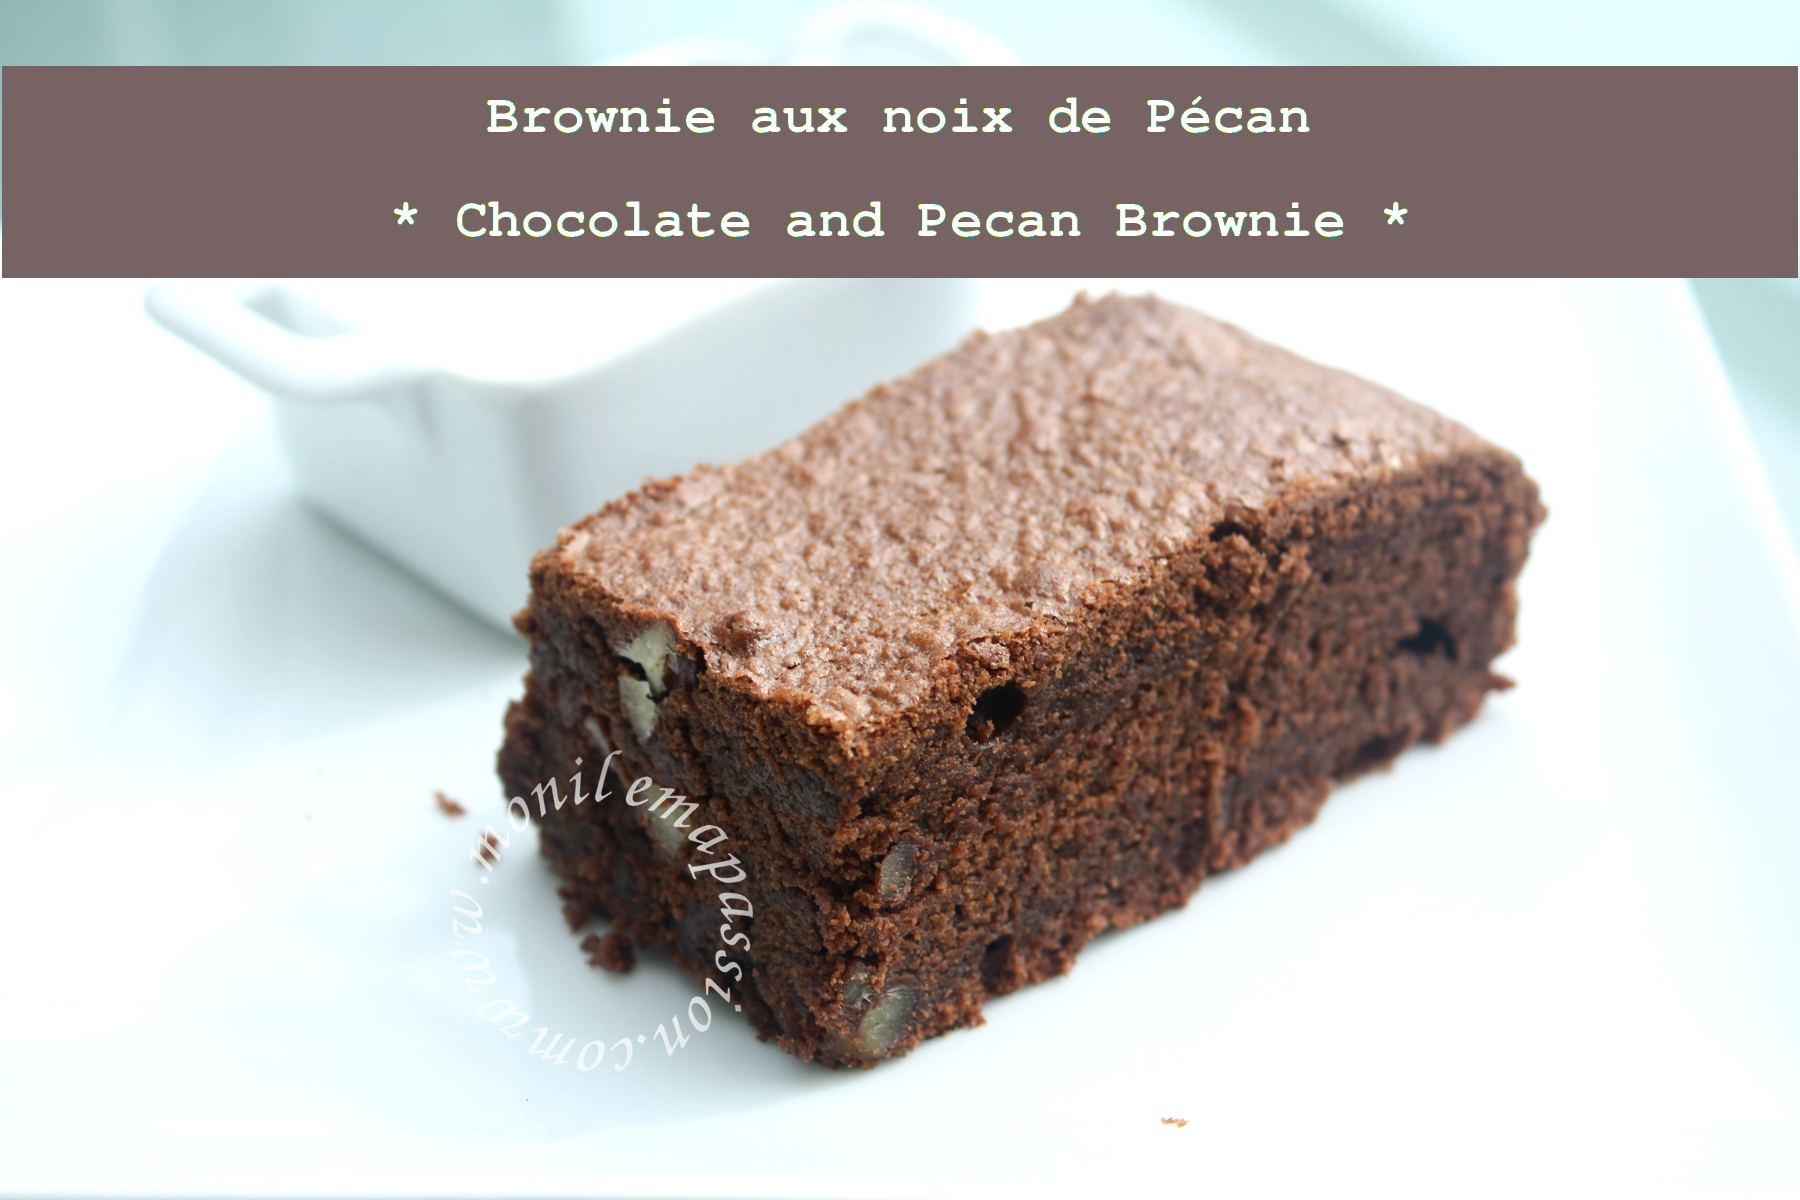 Brownie aux noix de Pécan – Chocolate & Pecan Brownie